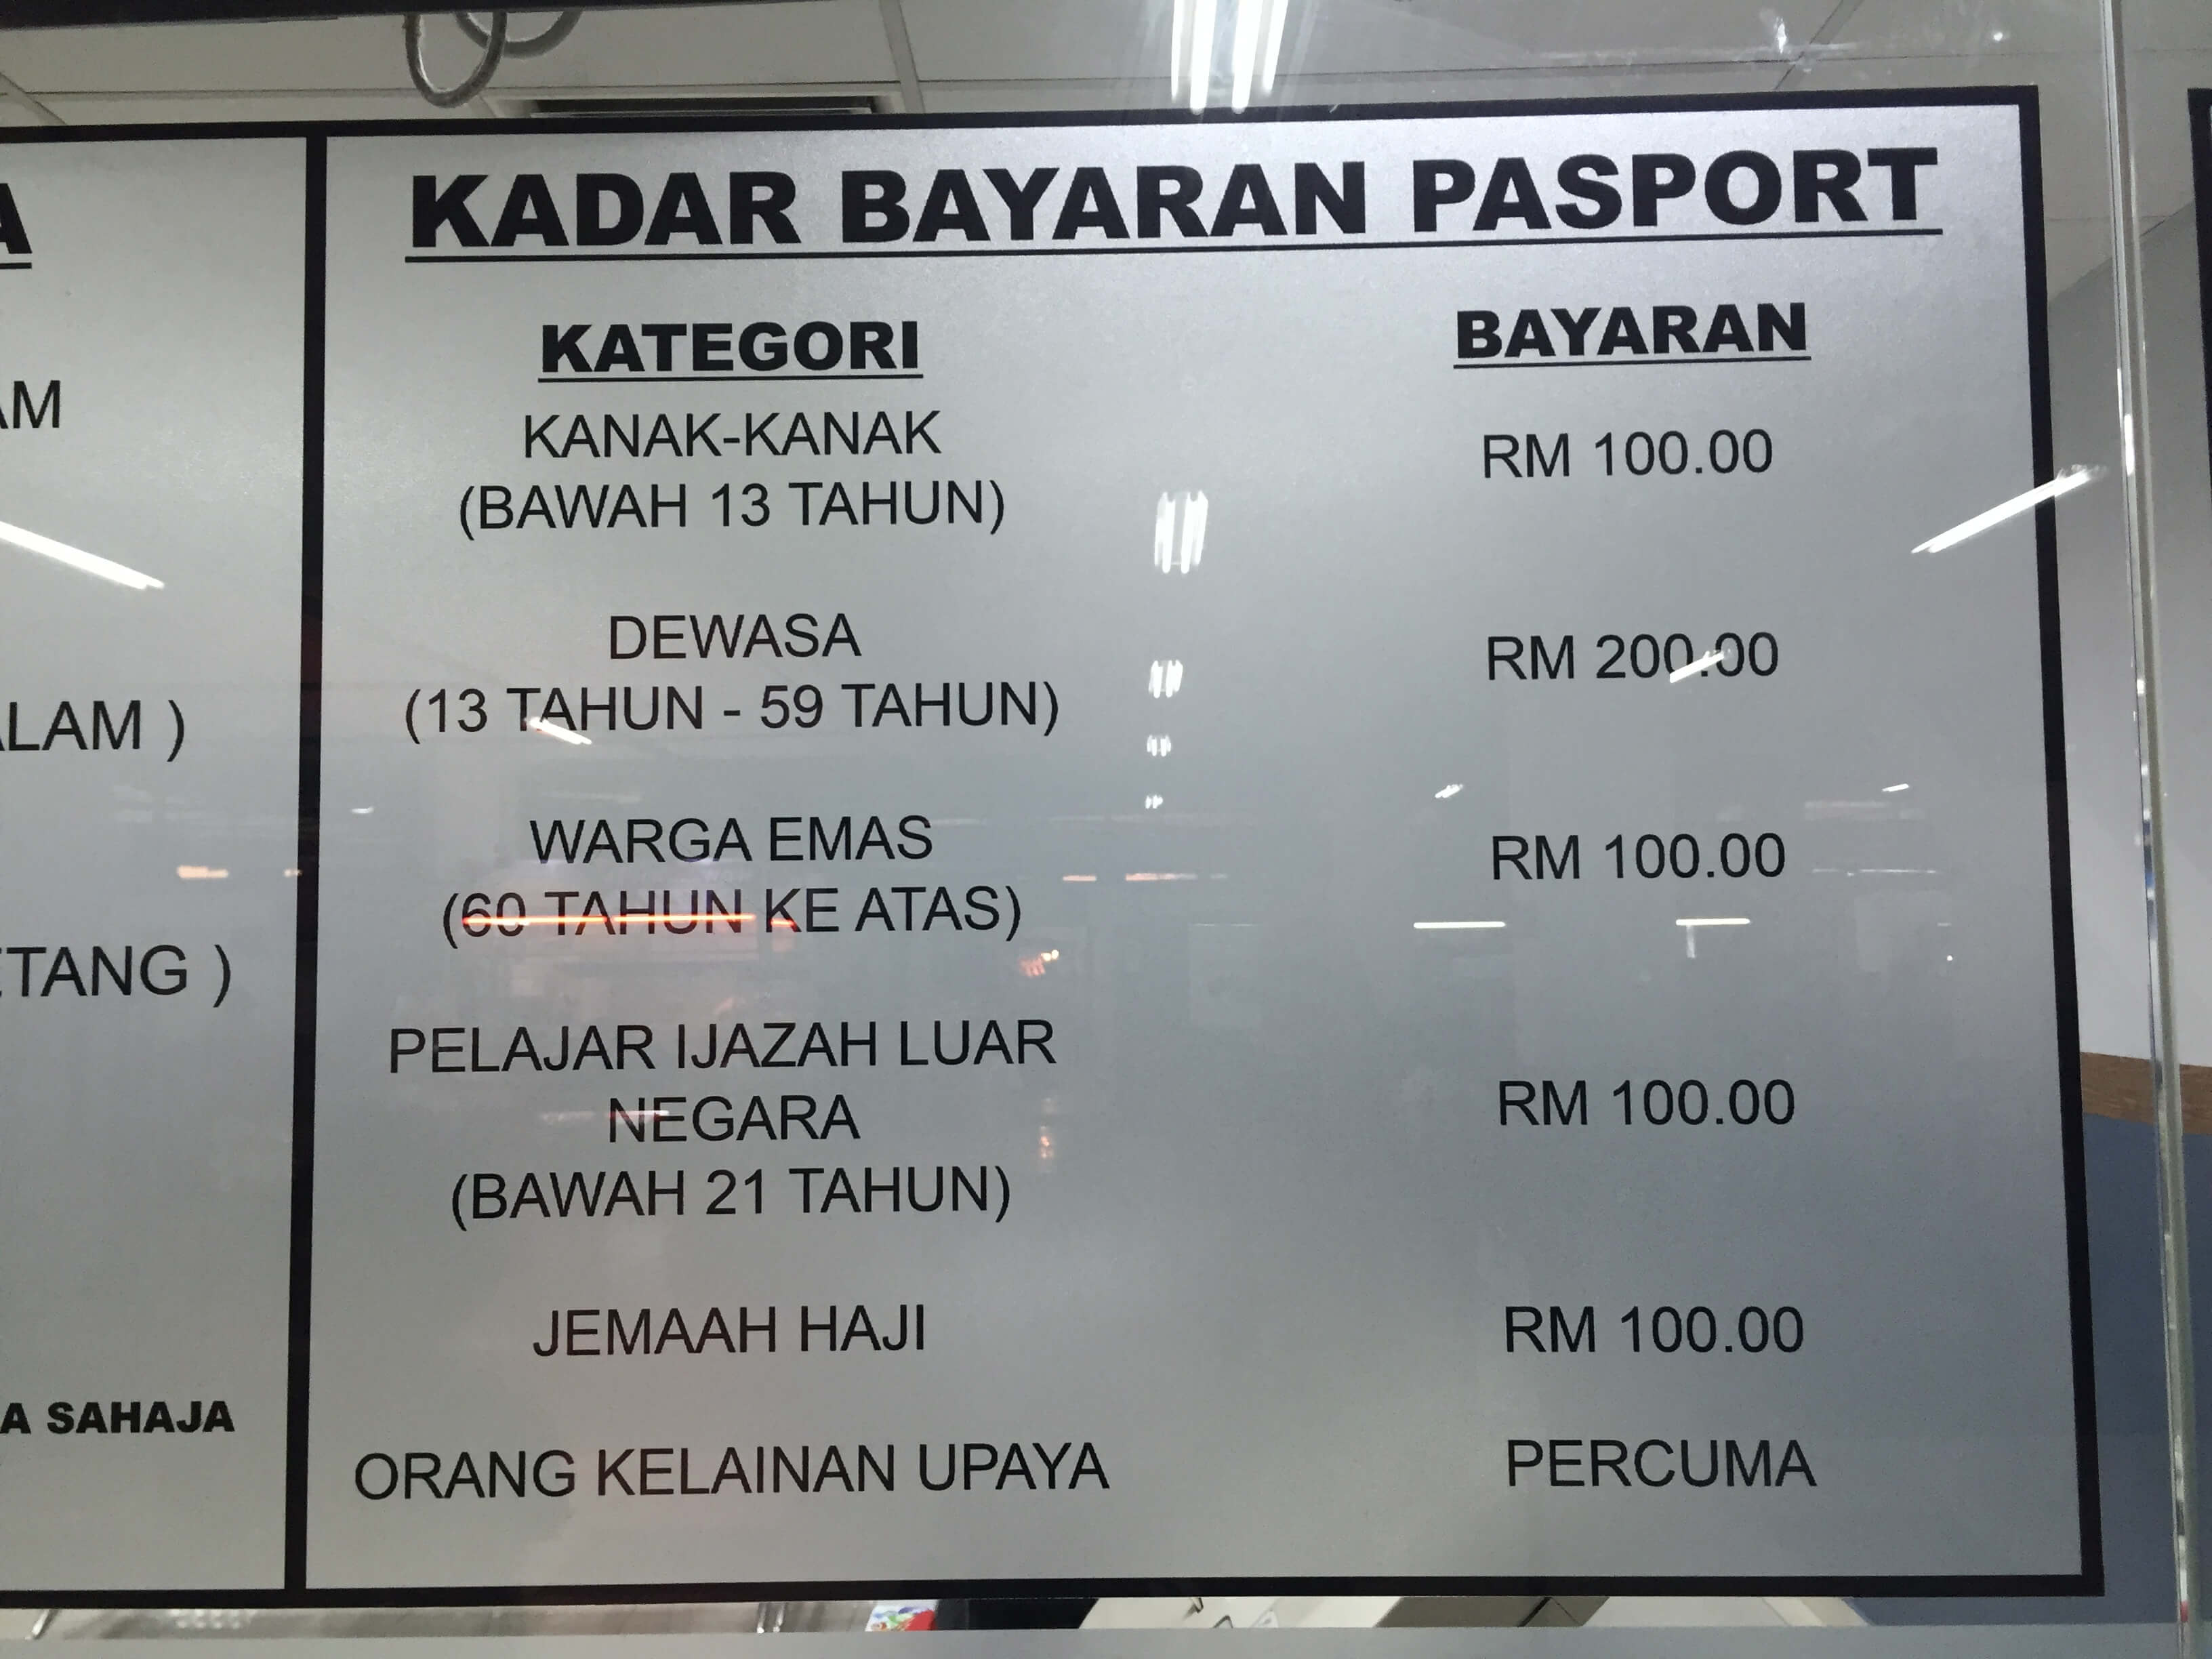 Jiffy Malaysia Passport Renewal In 1 Hour Not Your Typical Tourist